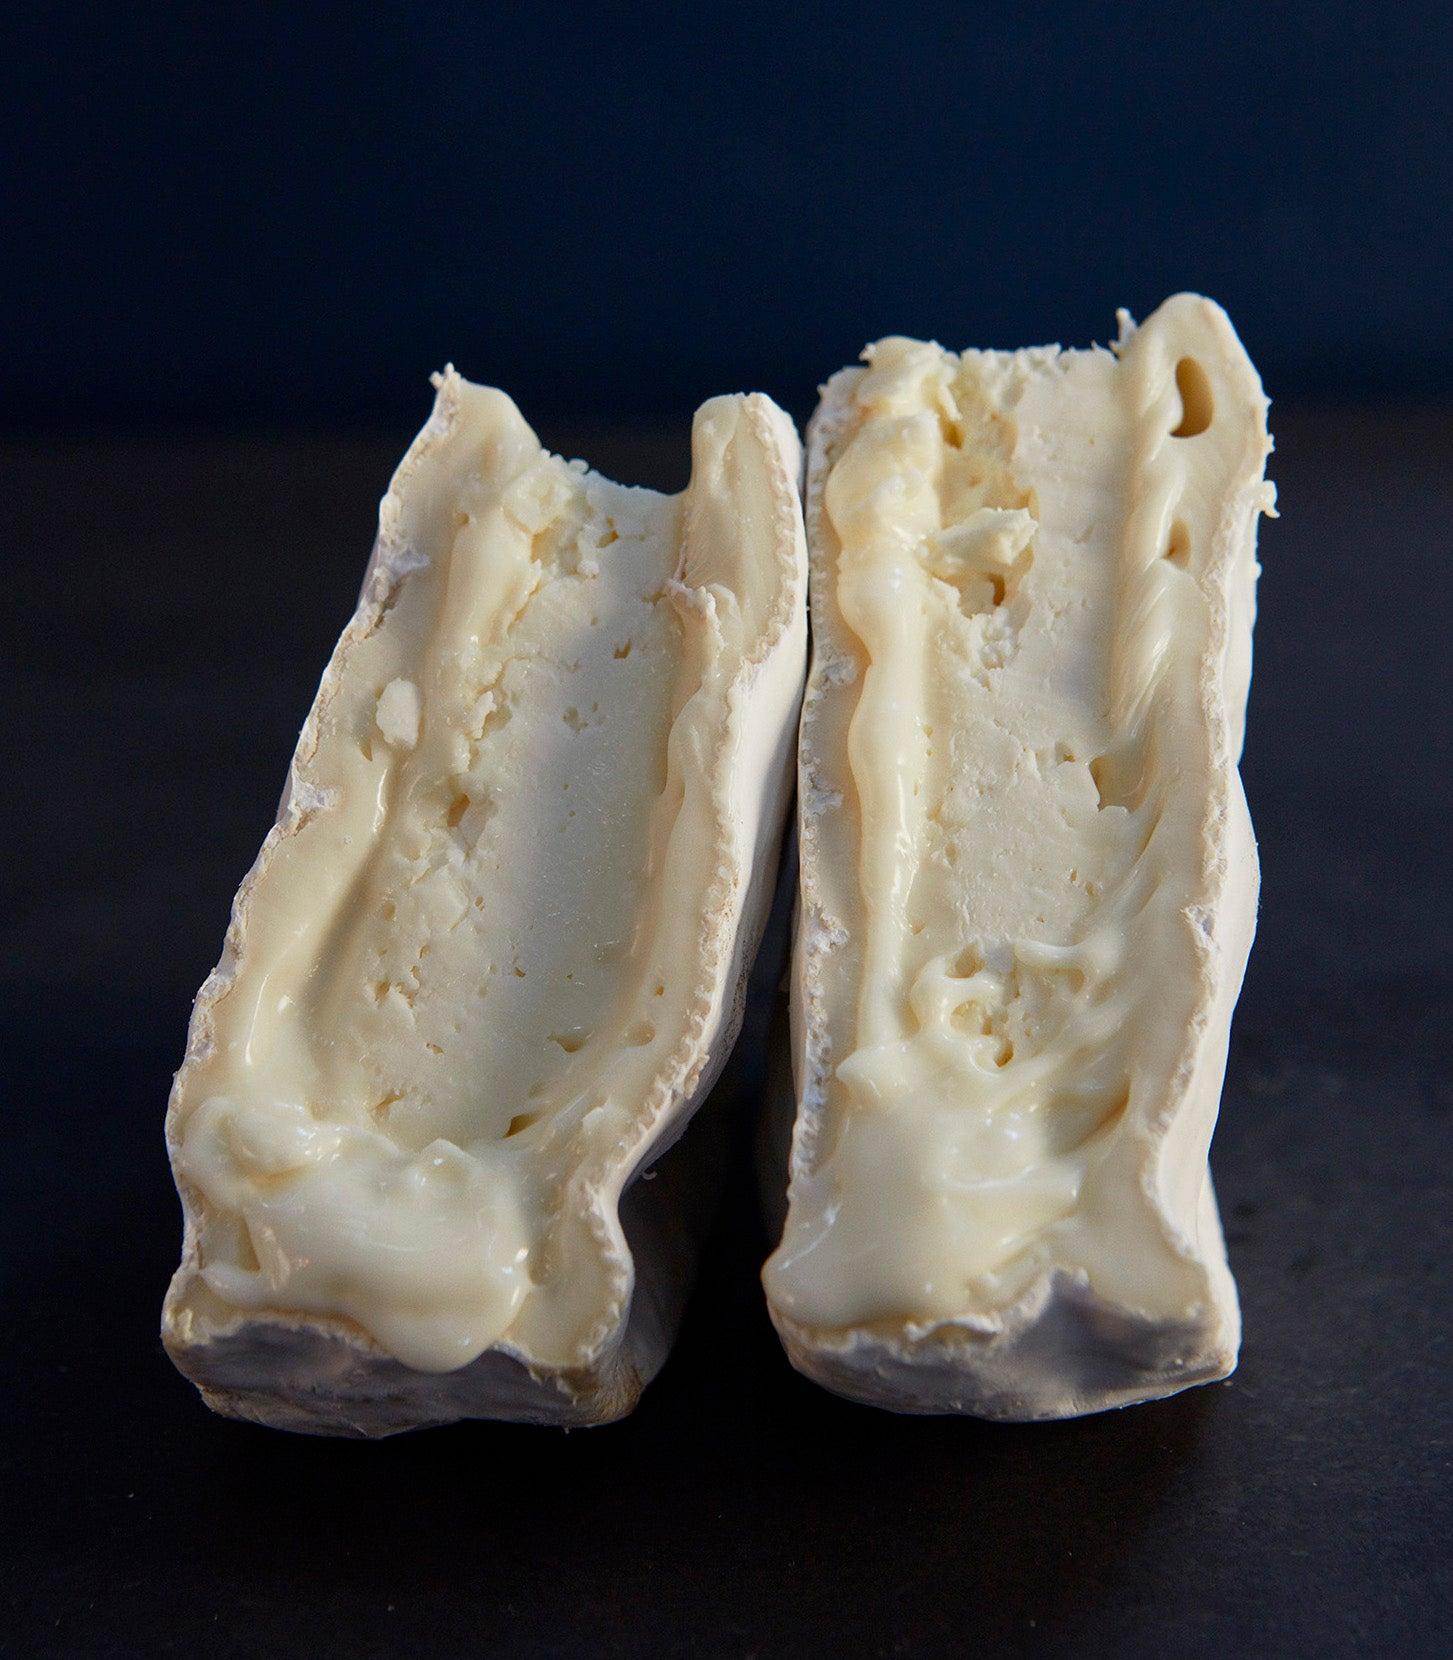 Two cuts of Wigmore vegetarian sheep's cheese, showing the creamy, soft paste beneath the natural, white rind, which is firm and chalky at the centre